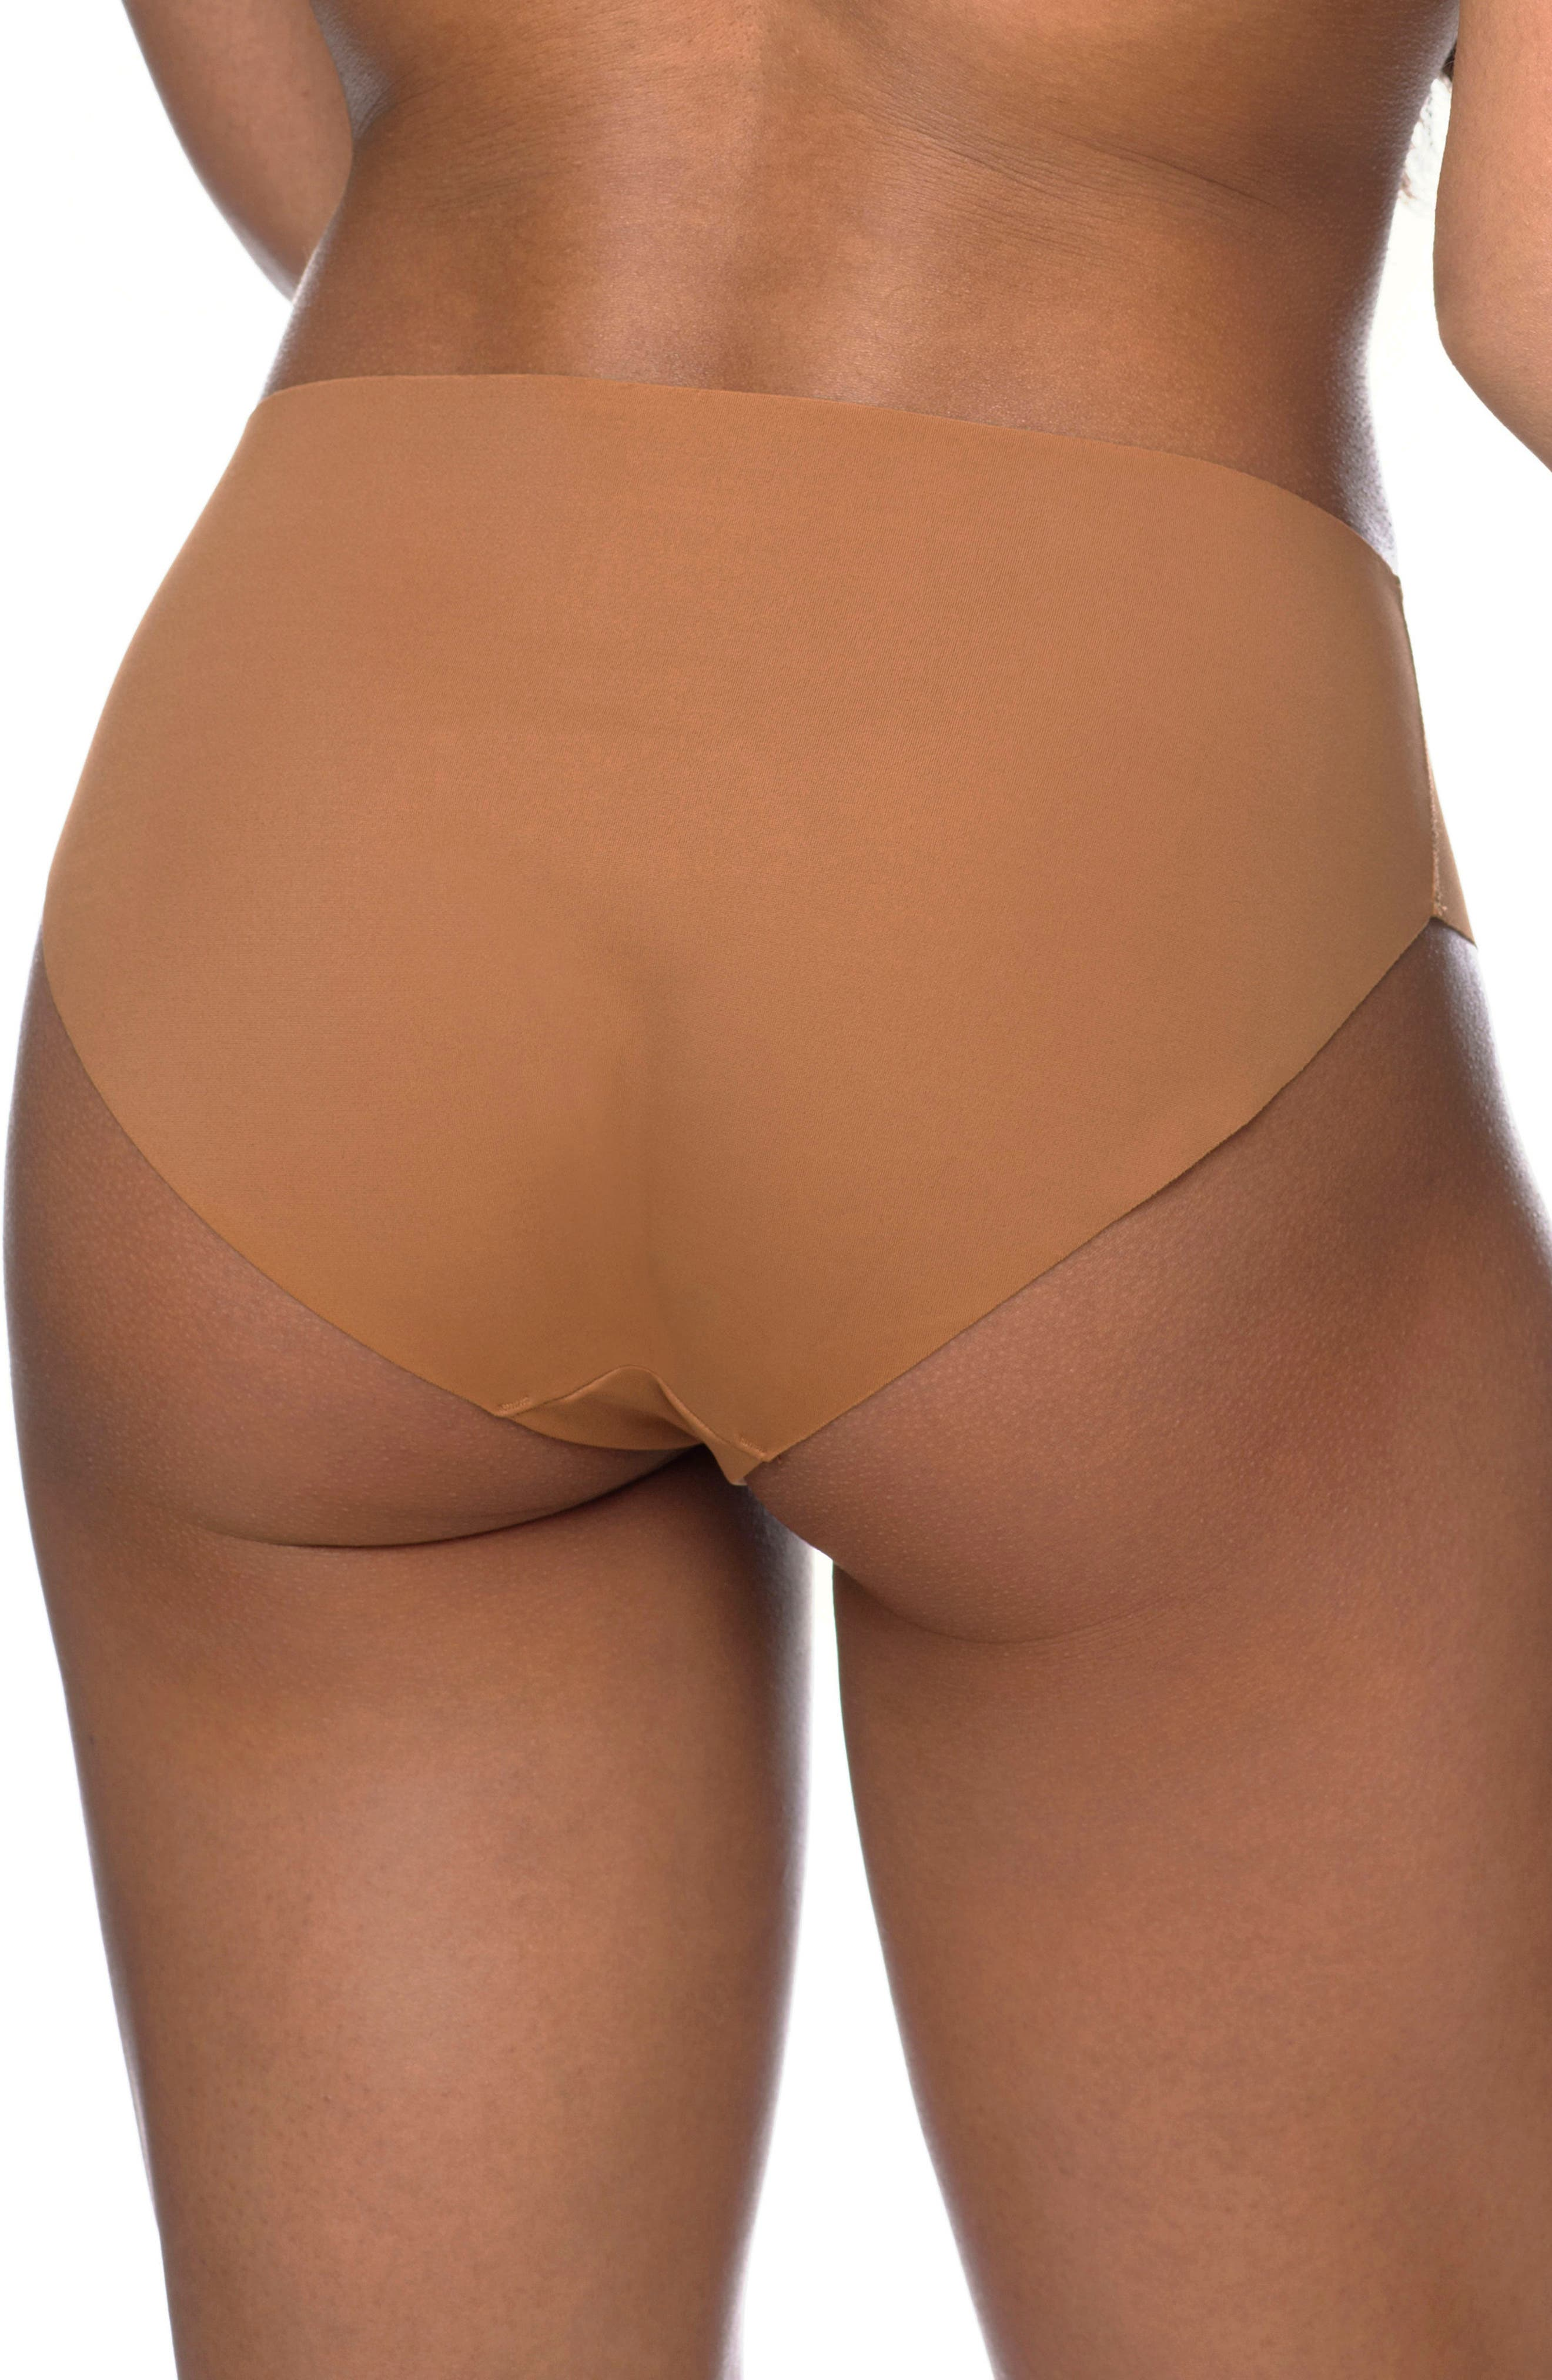 Naked Classic Briefs,                             Alternate thumbnail 2, color,                             Caramel